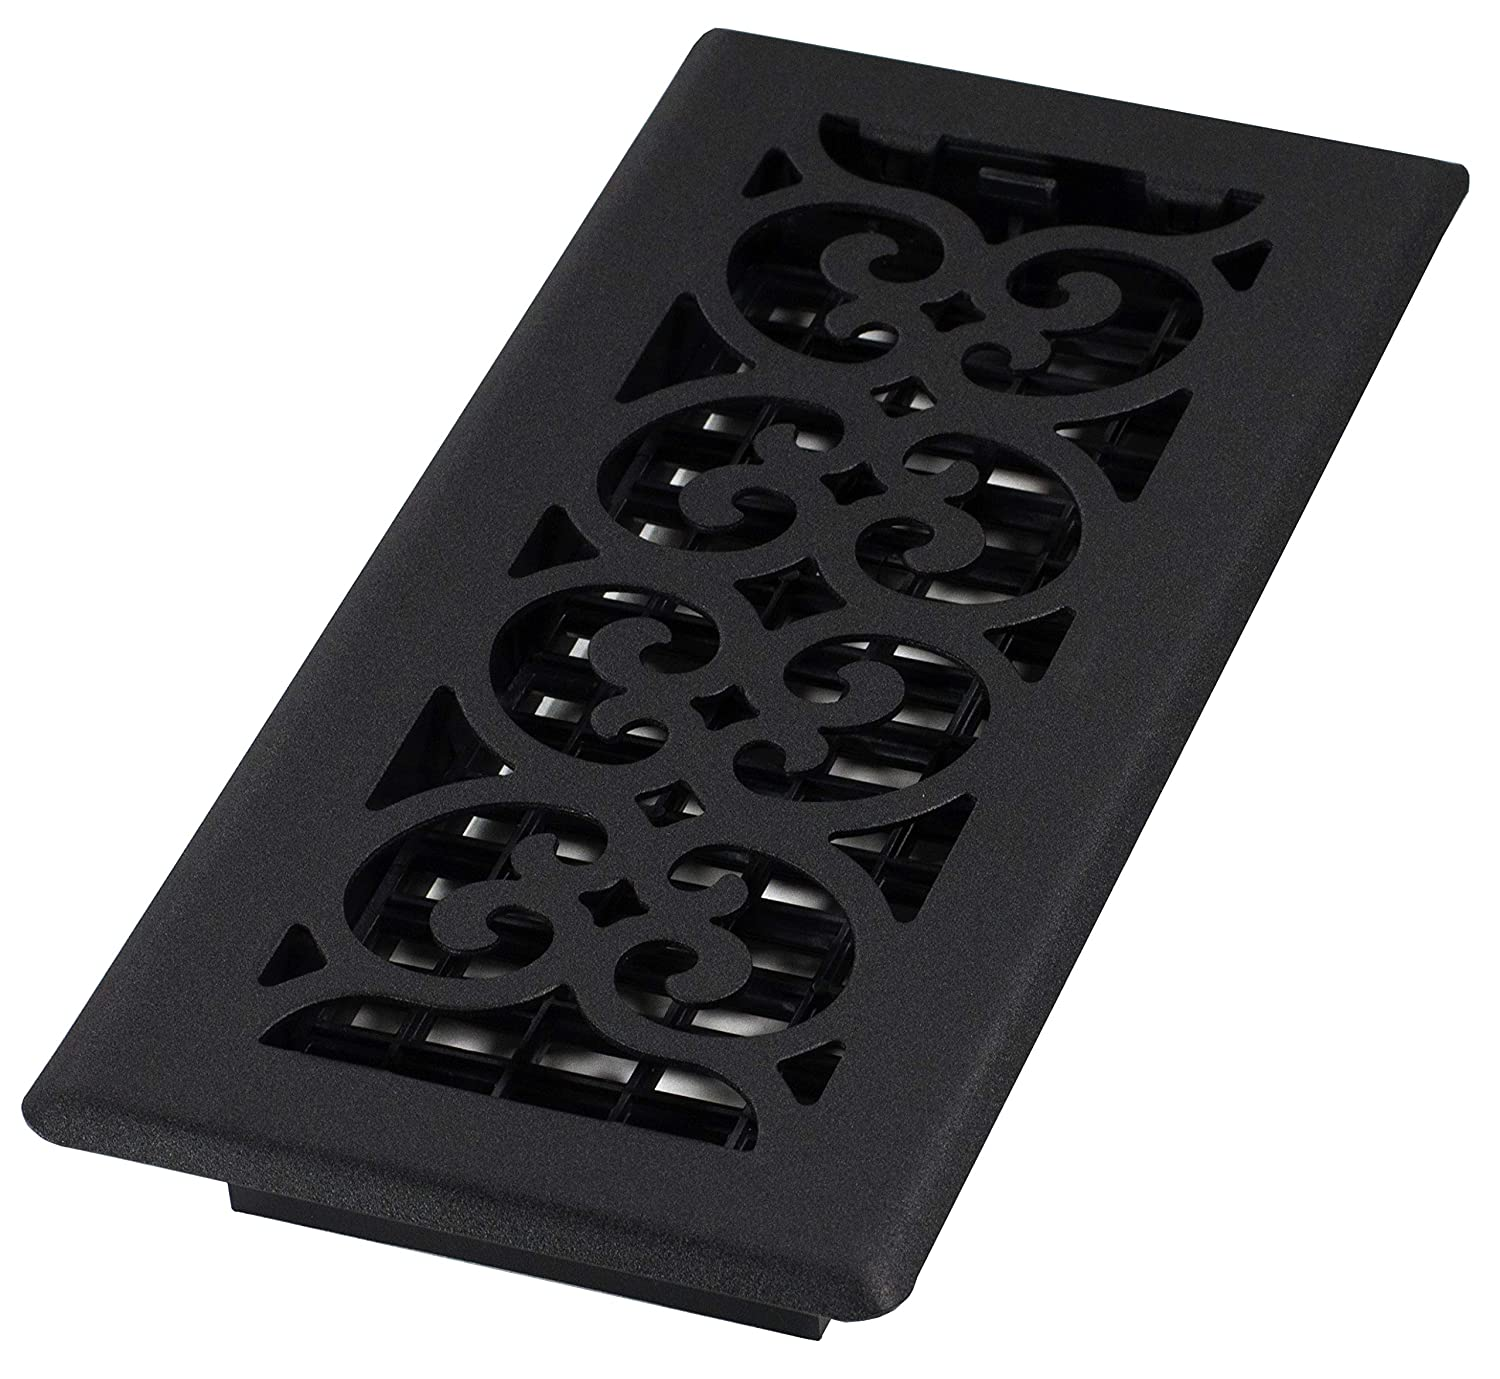 Decor Grates ST410 Scroll Floor Register, Textured Black Painted, 4-Inch by 10-Inch